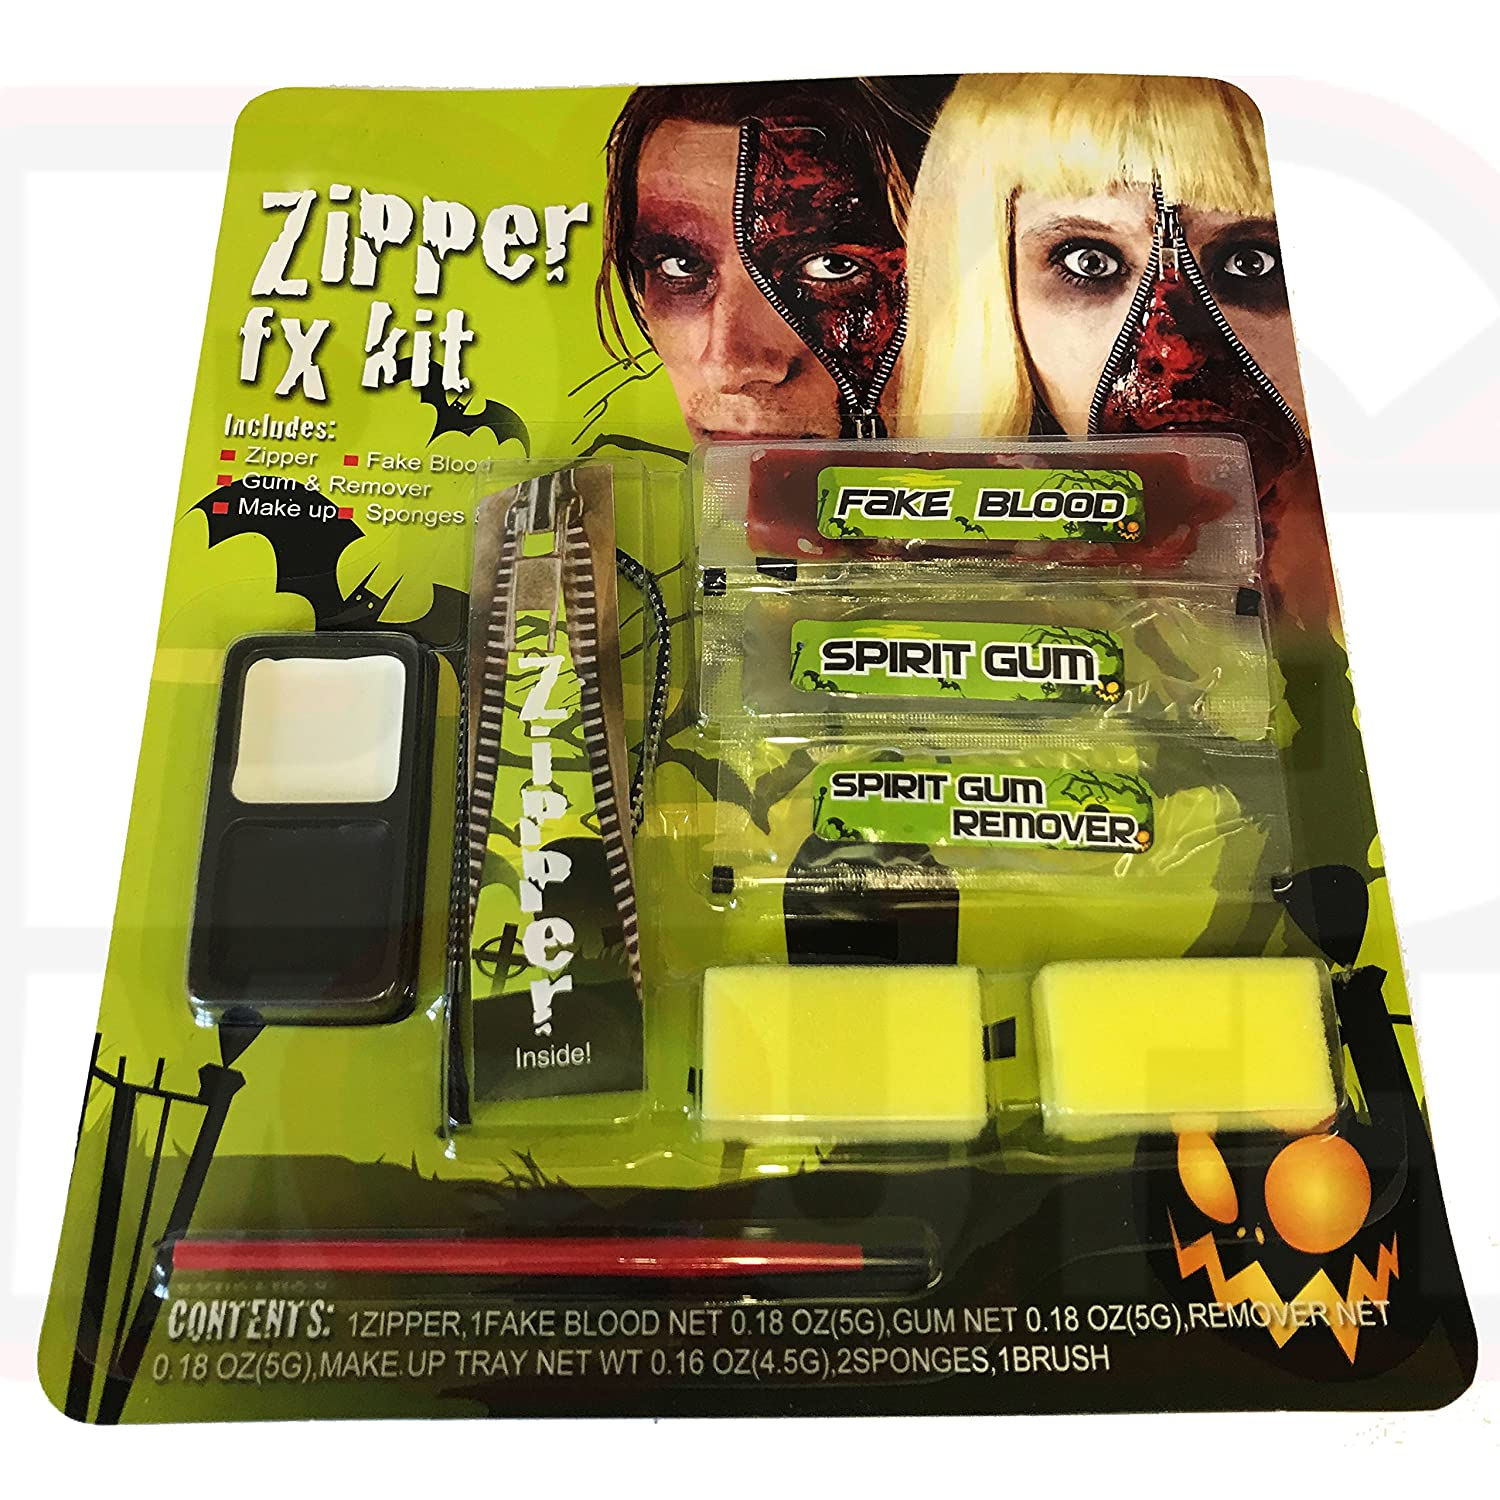 Bigmouth Zipper Face Halloween Zombie Make Up Kit Set - including Zipper / Gum & Remover / Makeup & Applicator Sponges for Halloween Fancy Dress Theatre Big Mouth